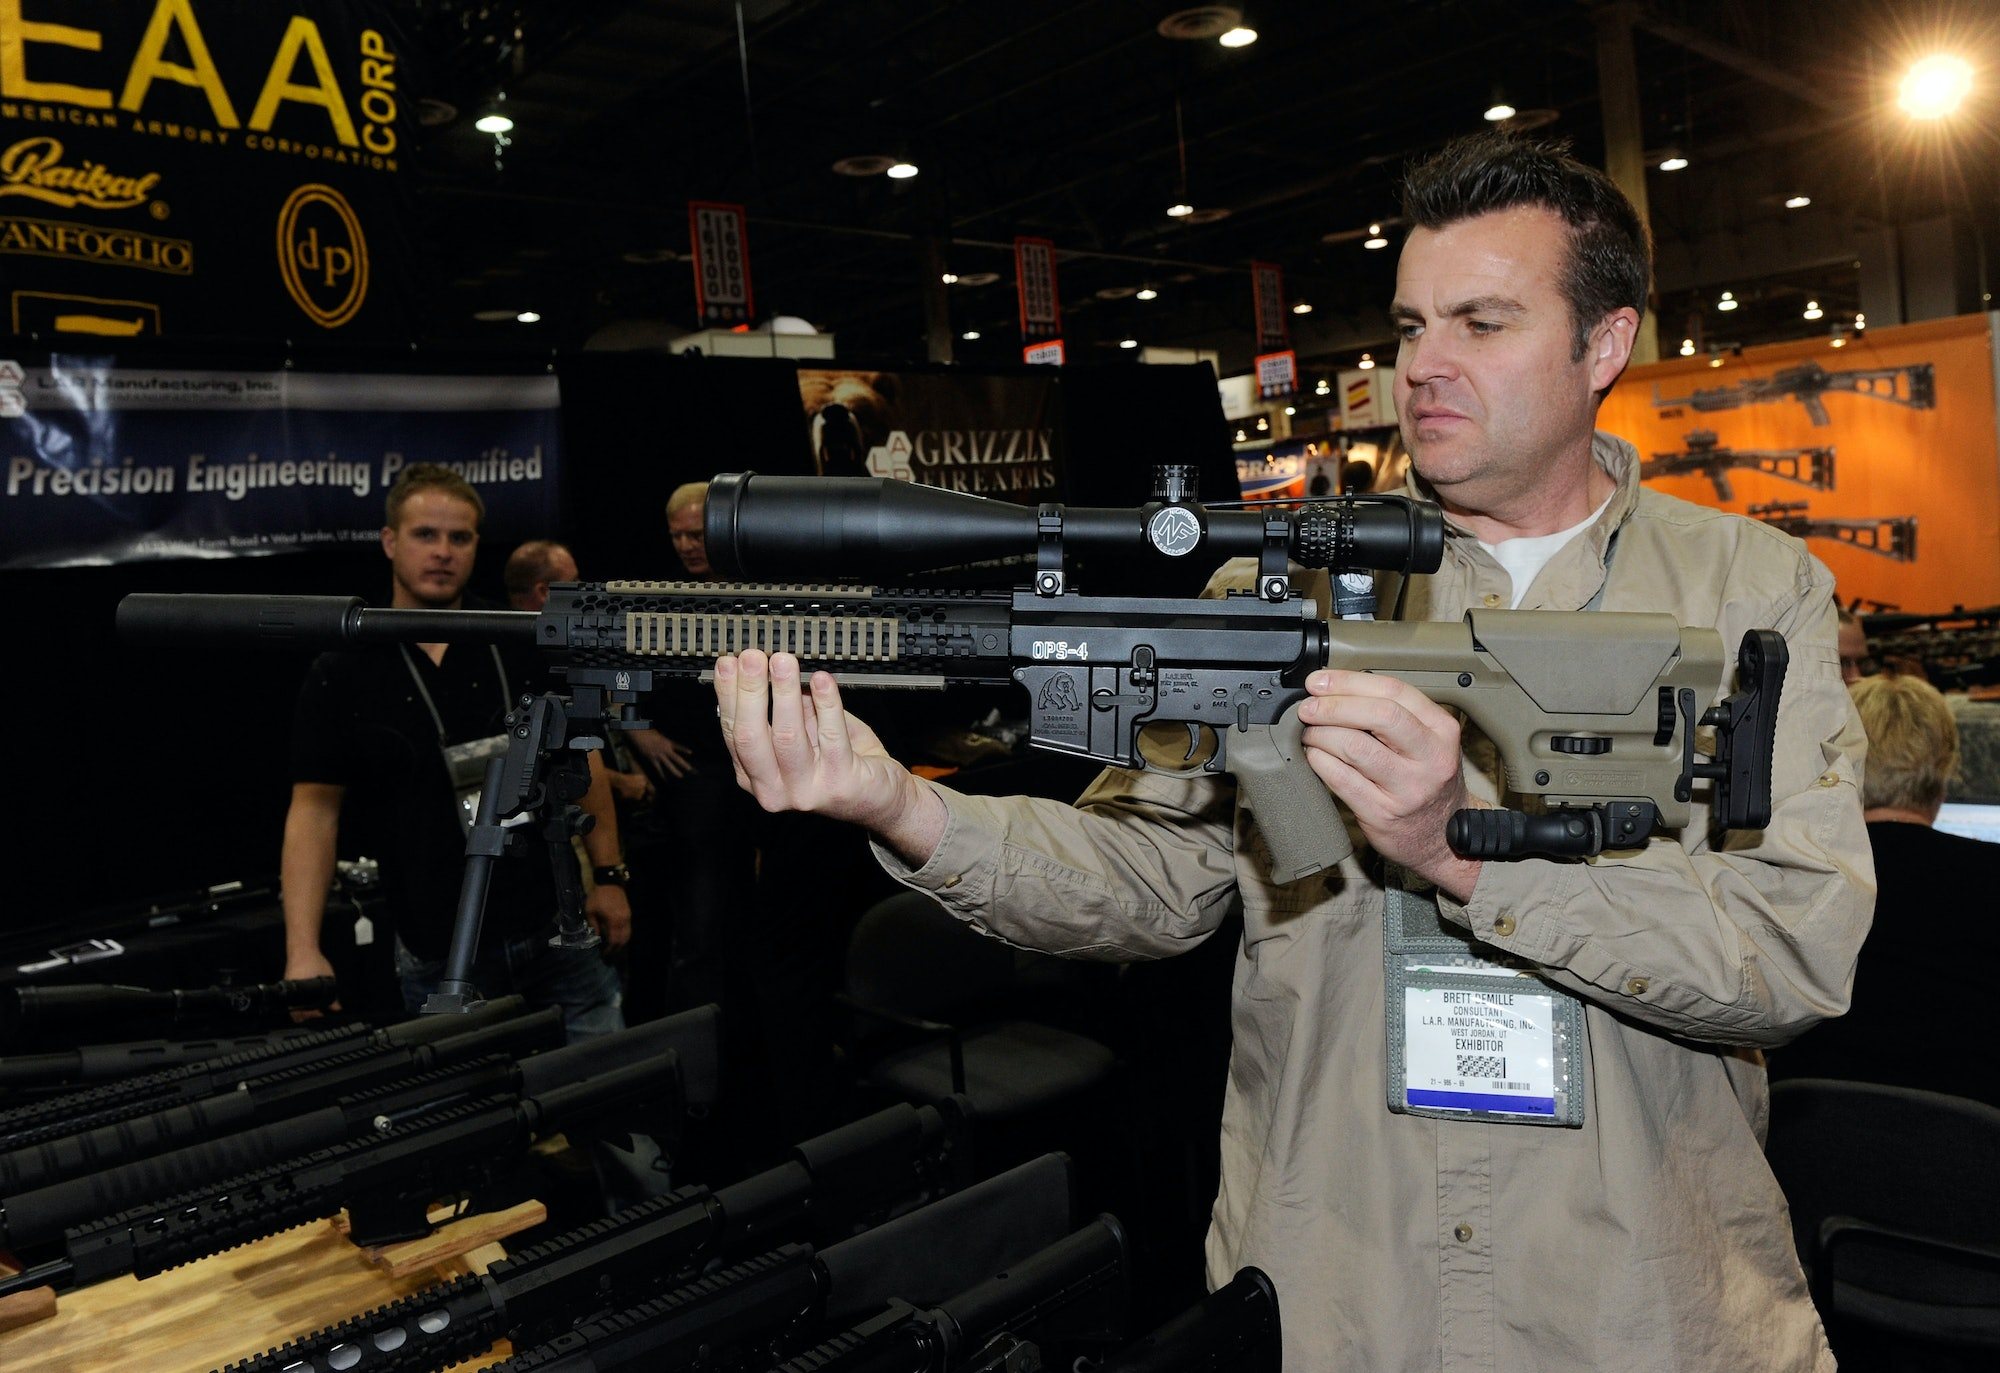 LAS VEGAS, NV - JANUARY 18: Brett DeMille demonstrates an AR-15 rifle with a silencer at the L.A.R./Grizzly Firearms booth at the National Shooting Sports Foundation's 33rd annual Shooting, Hunting and Outdoor Trade (SHOT) Show at the Sands Expo and Convention Center January 18, 2011 in Las Vegas, Nevada. The shooting rampage in Tucson, Arizona on January 8 that killed six people and injured 13 people, including U.S. Rep. Gabrielle Giffords (D-AZ), has sparked debate about gun laws in the media and Congress. (Photo by Ethan Miller/Getty Images)